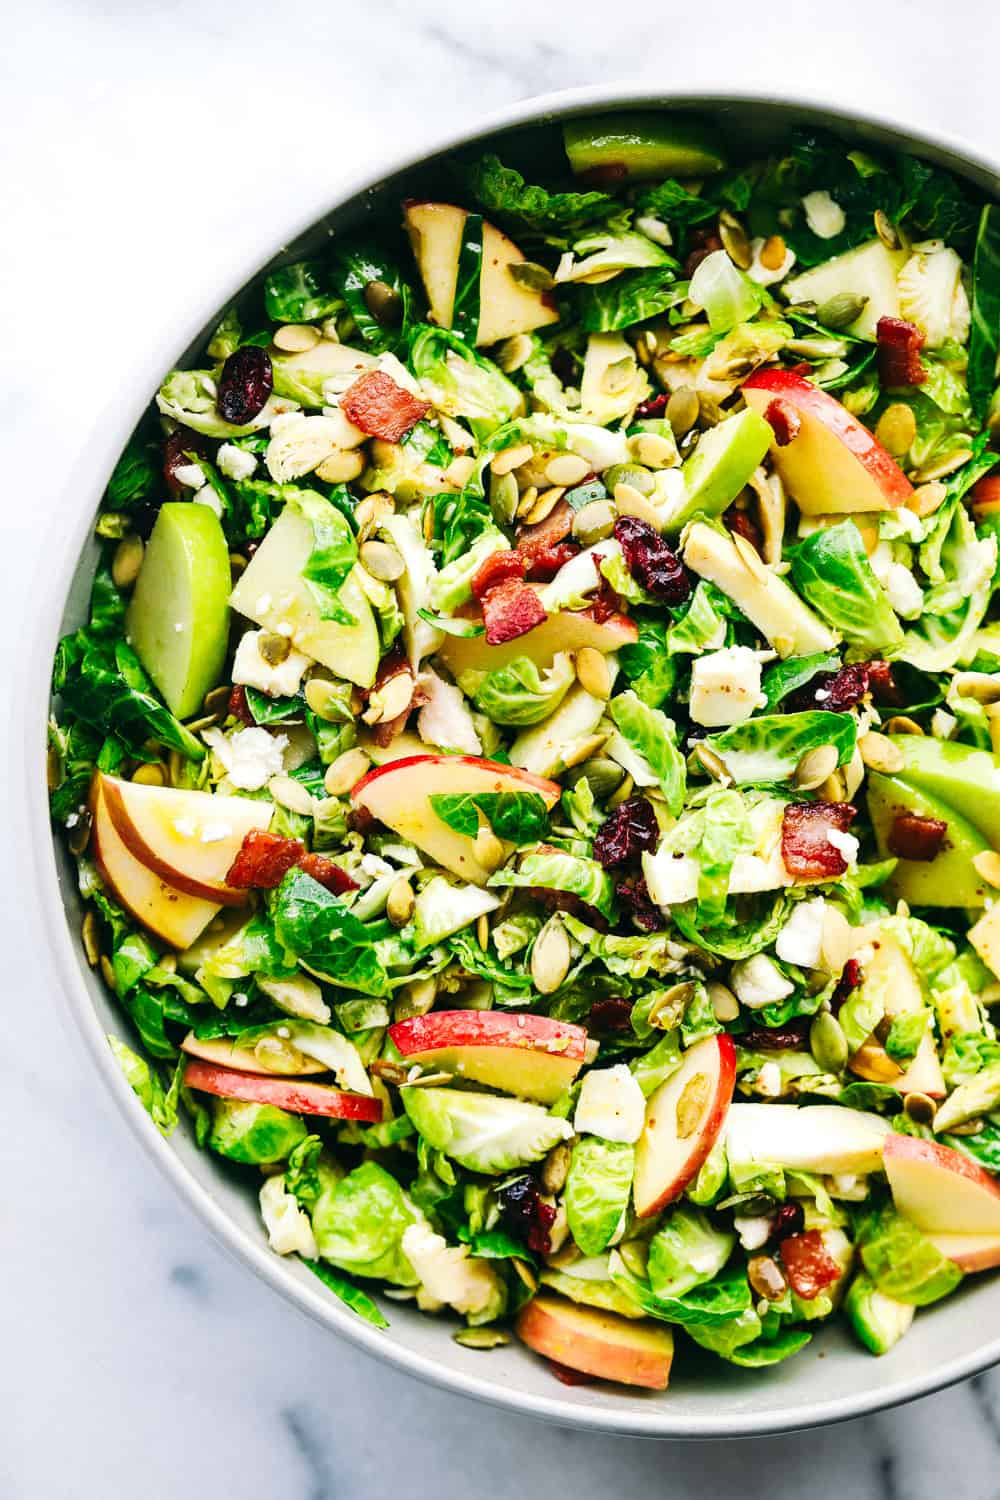 apple bacon Brussels sprouts salad in a bowl.